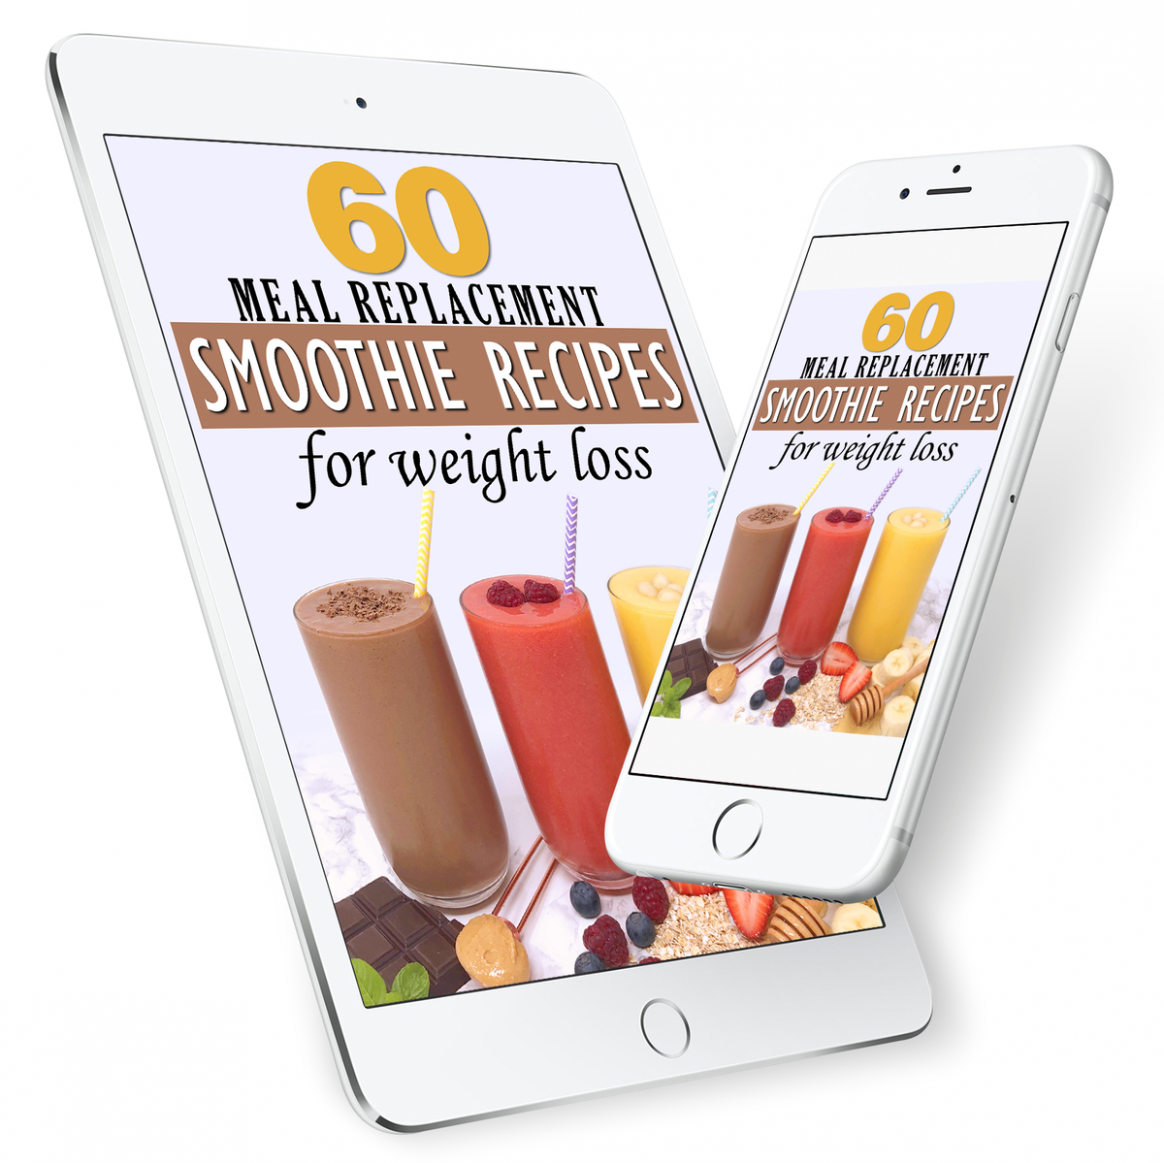 9 Meal Replacement Smoothies eBook - Smoothie Recipes For Weight Loss Meal Replacement